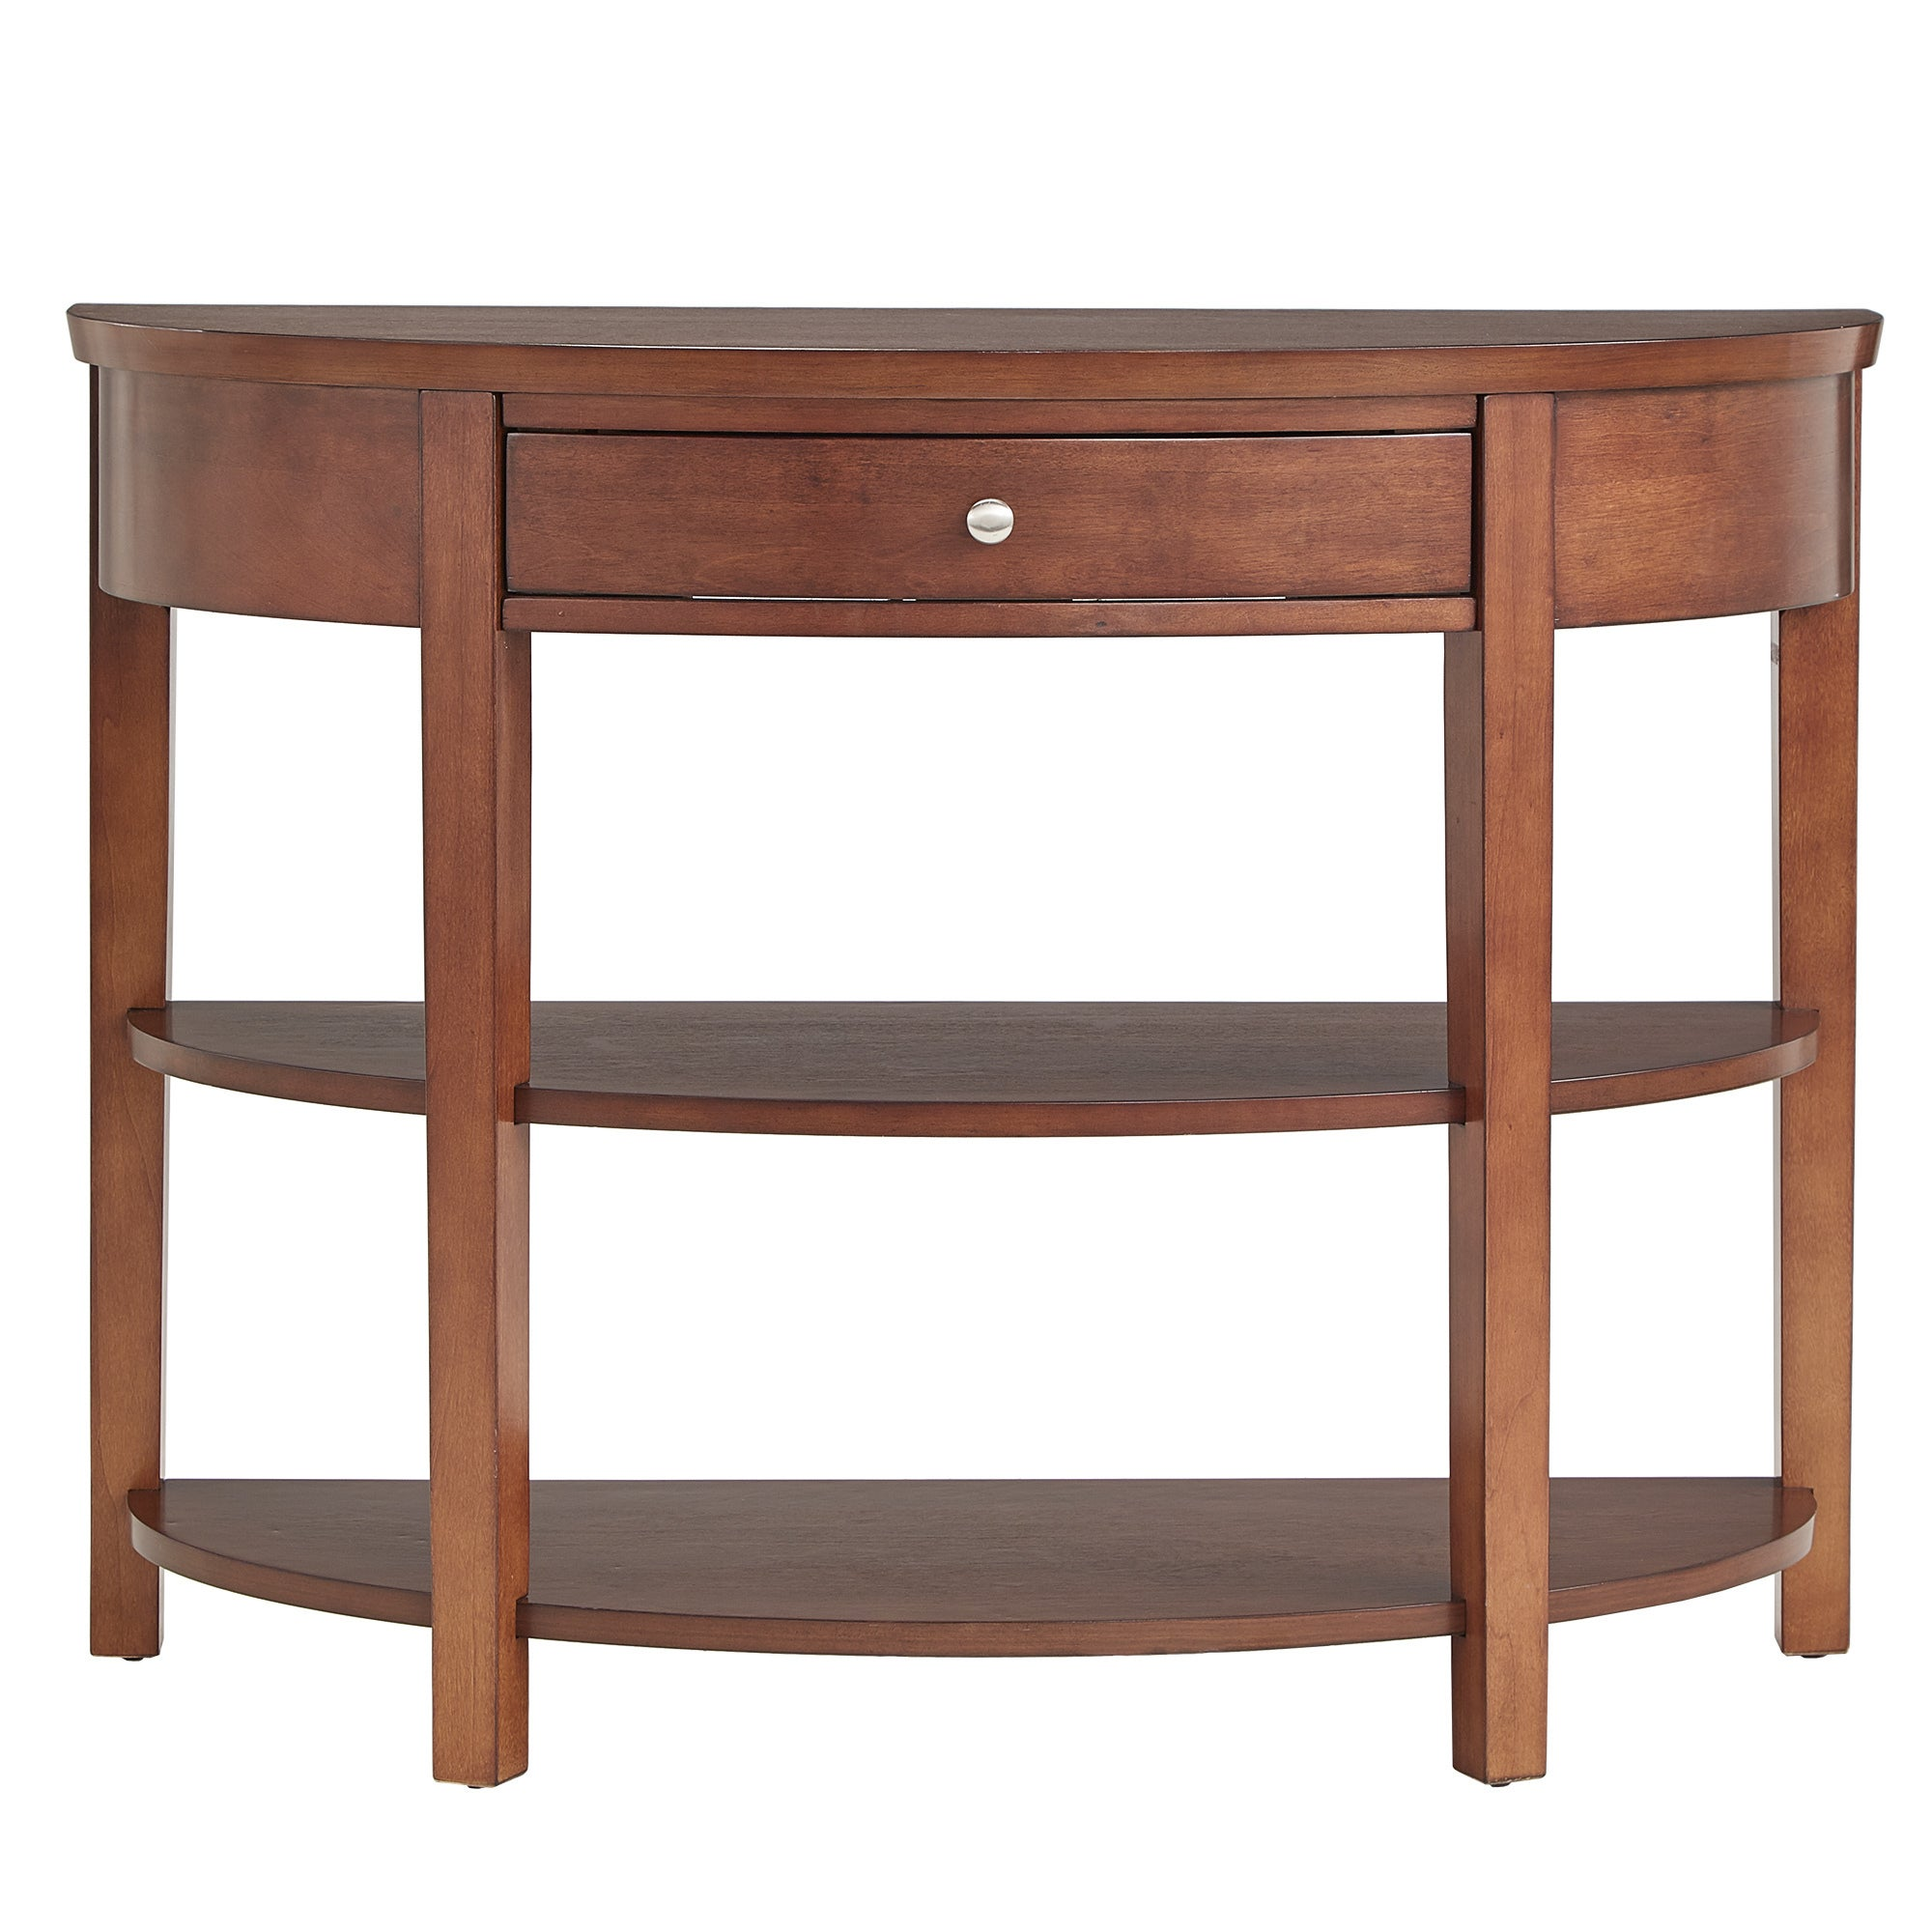 Fillmore Rounded 1 Drawer Console Table Tv Stand By Inspire Q Bold Free Shipping Today 23122445